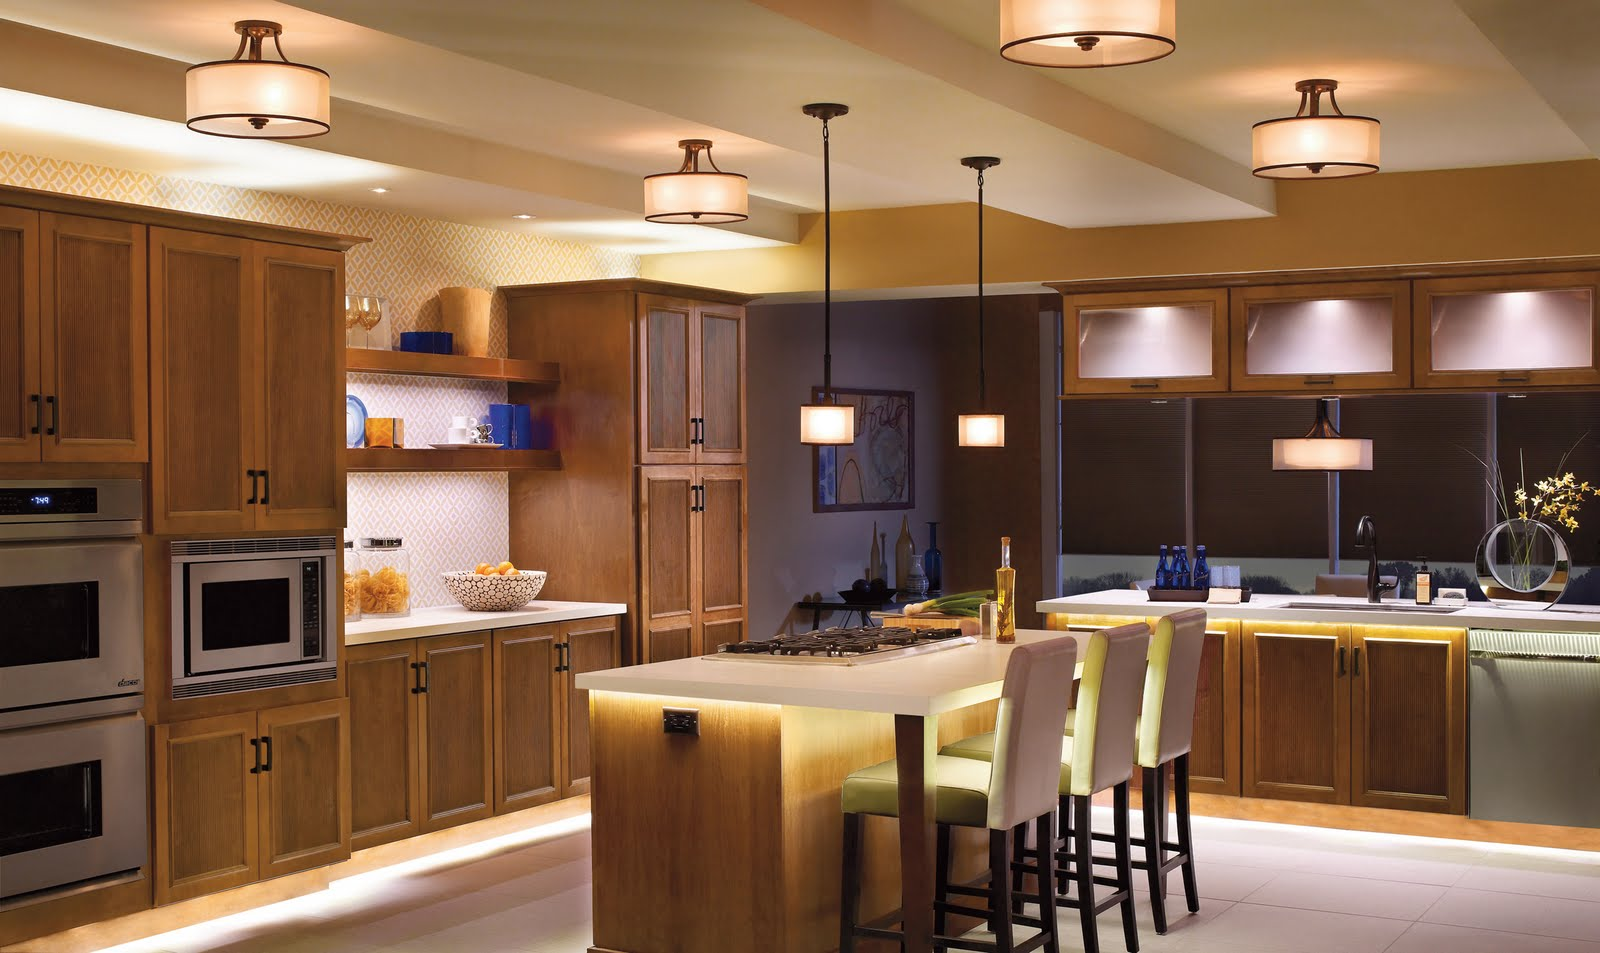 Ordinary Ideas For Kitchen Lighting Design Part - 2: Kitchen Lighting Design Tips | EiXei Home Improvement